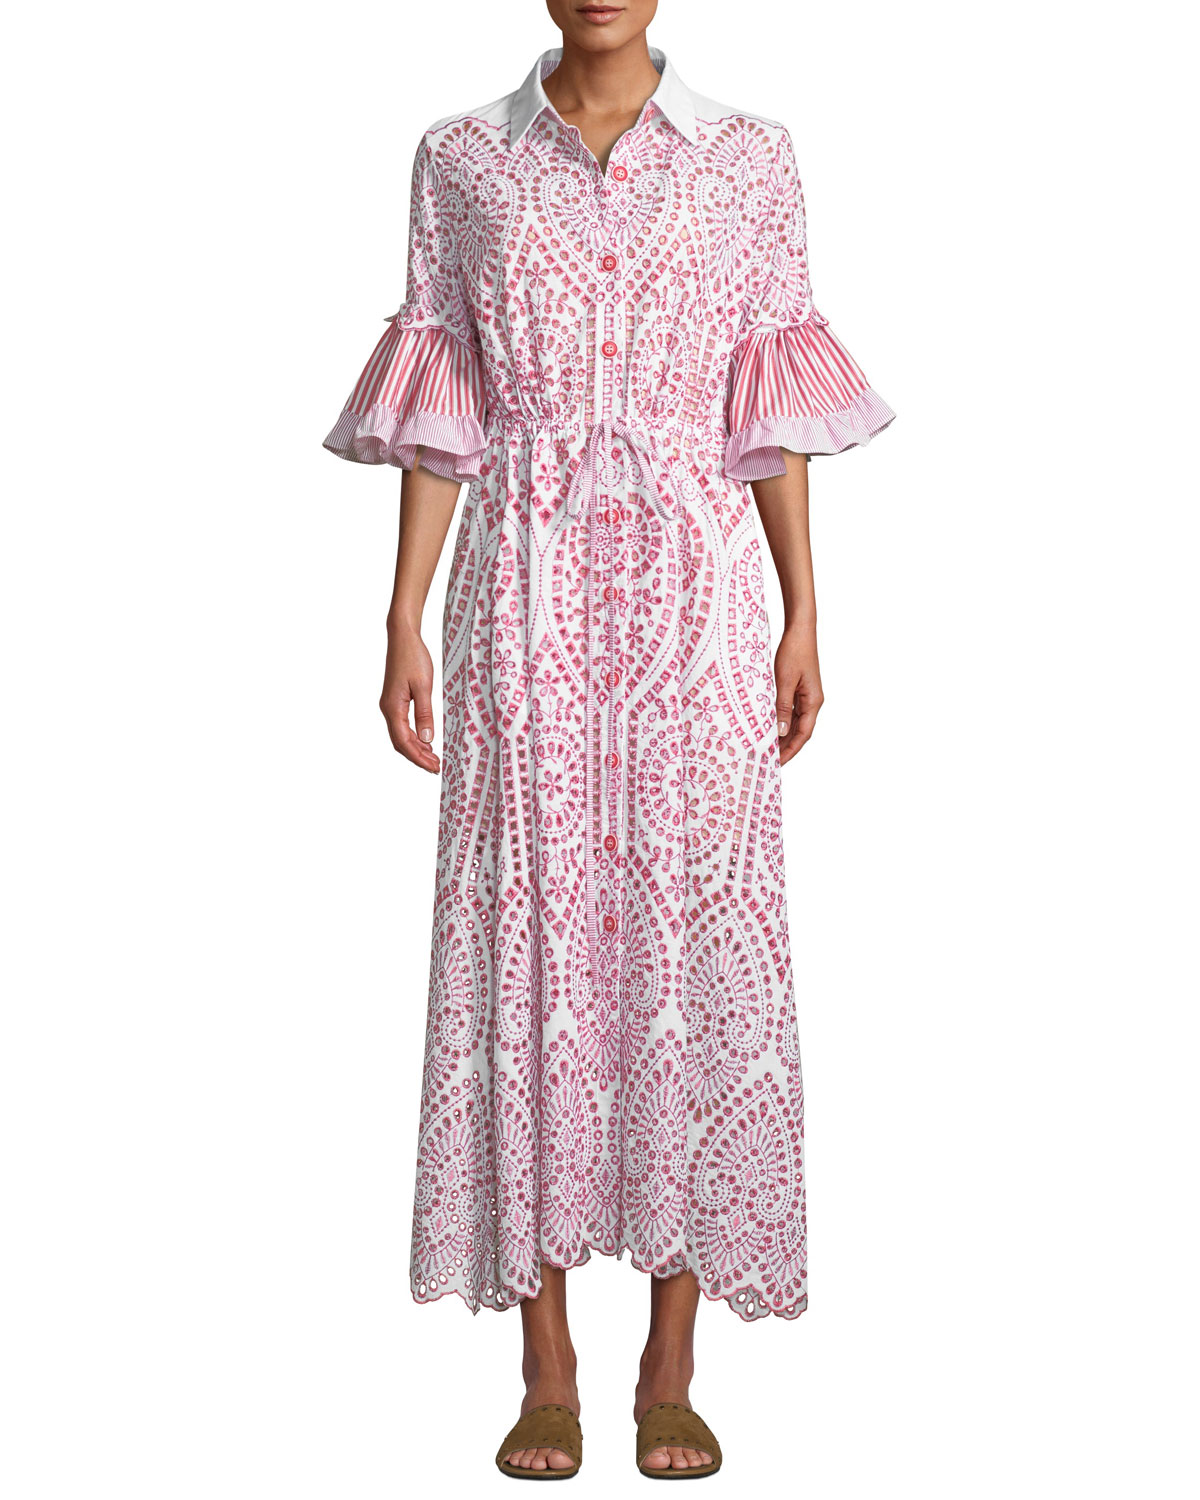 EVI GRINTELA Valerie Cotton Lace Shirtdress in Red/White